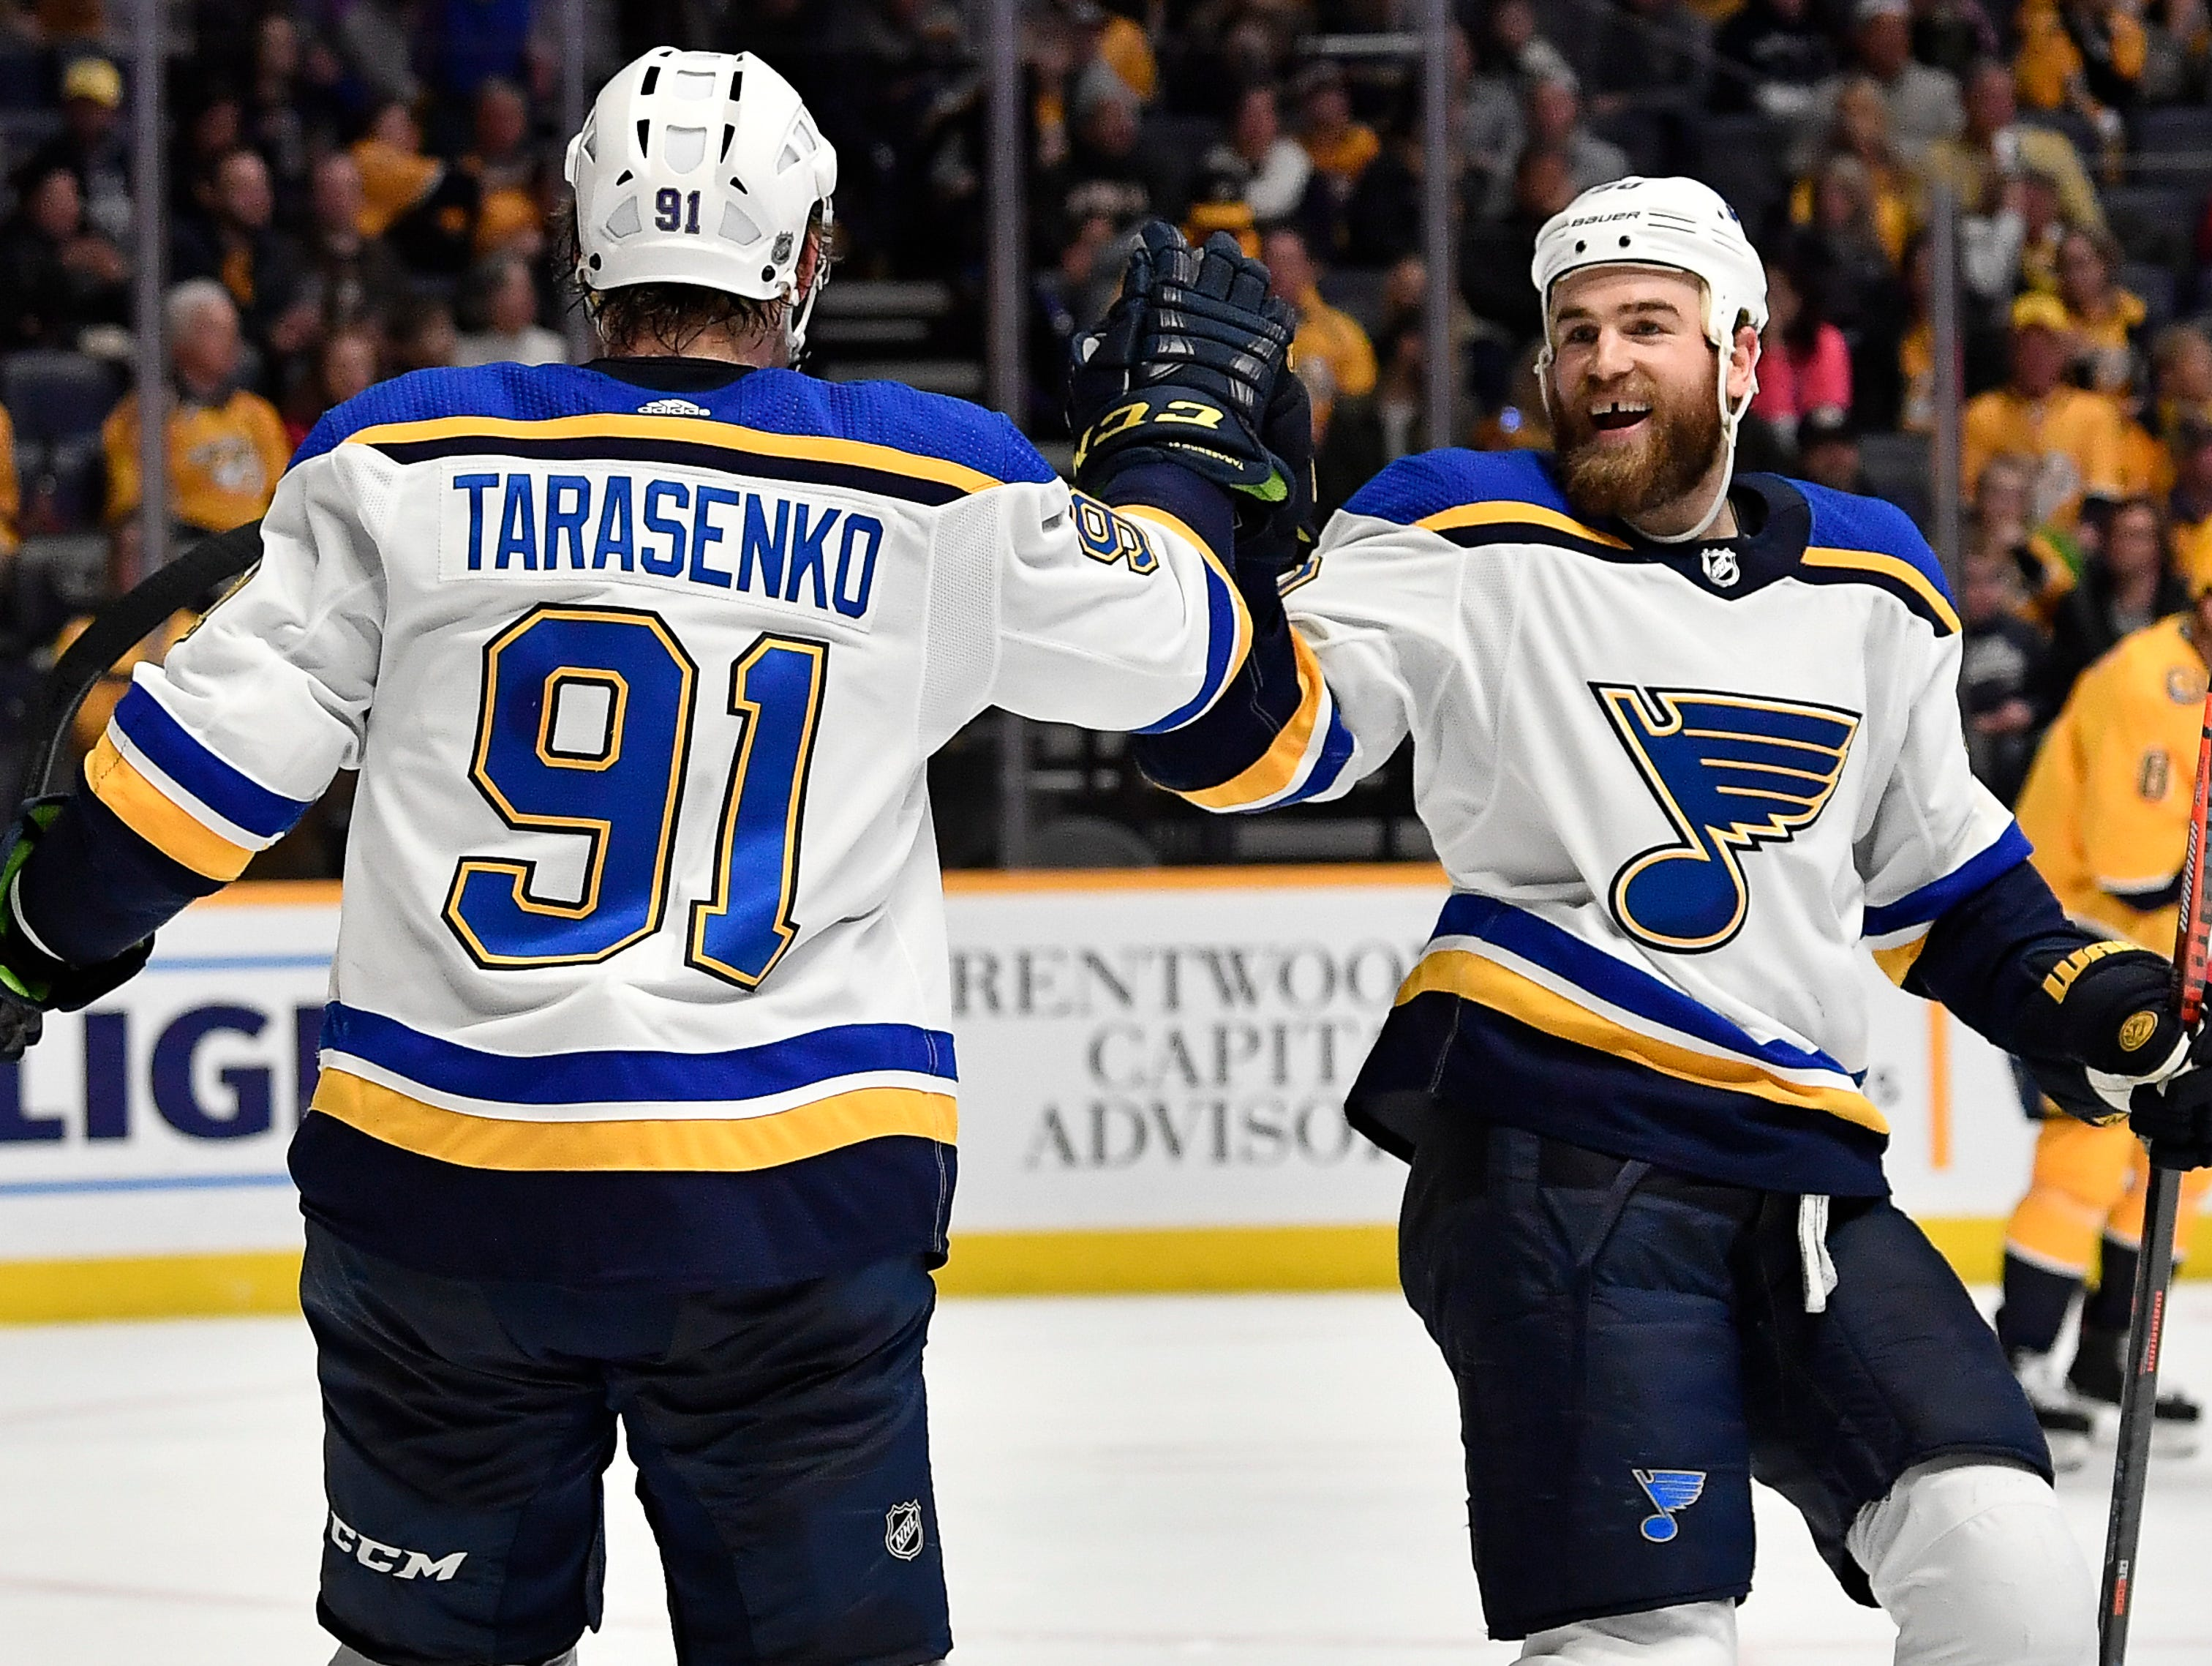 Blues right wing Vladimir Tarasenko (91) is congratulated after one of his goals during the second period against the Predators at Bridgestone Arena Sunday Feb. 10, 2019 in Nashville, Tenn.